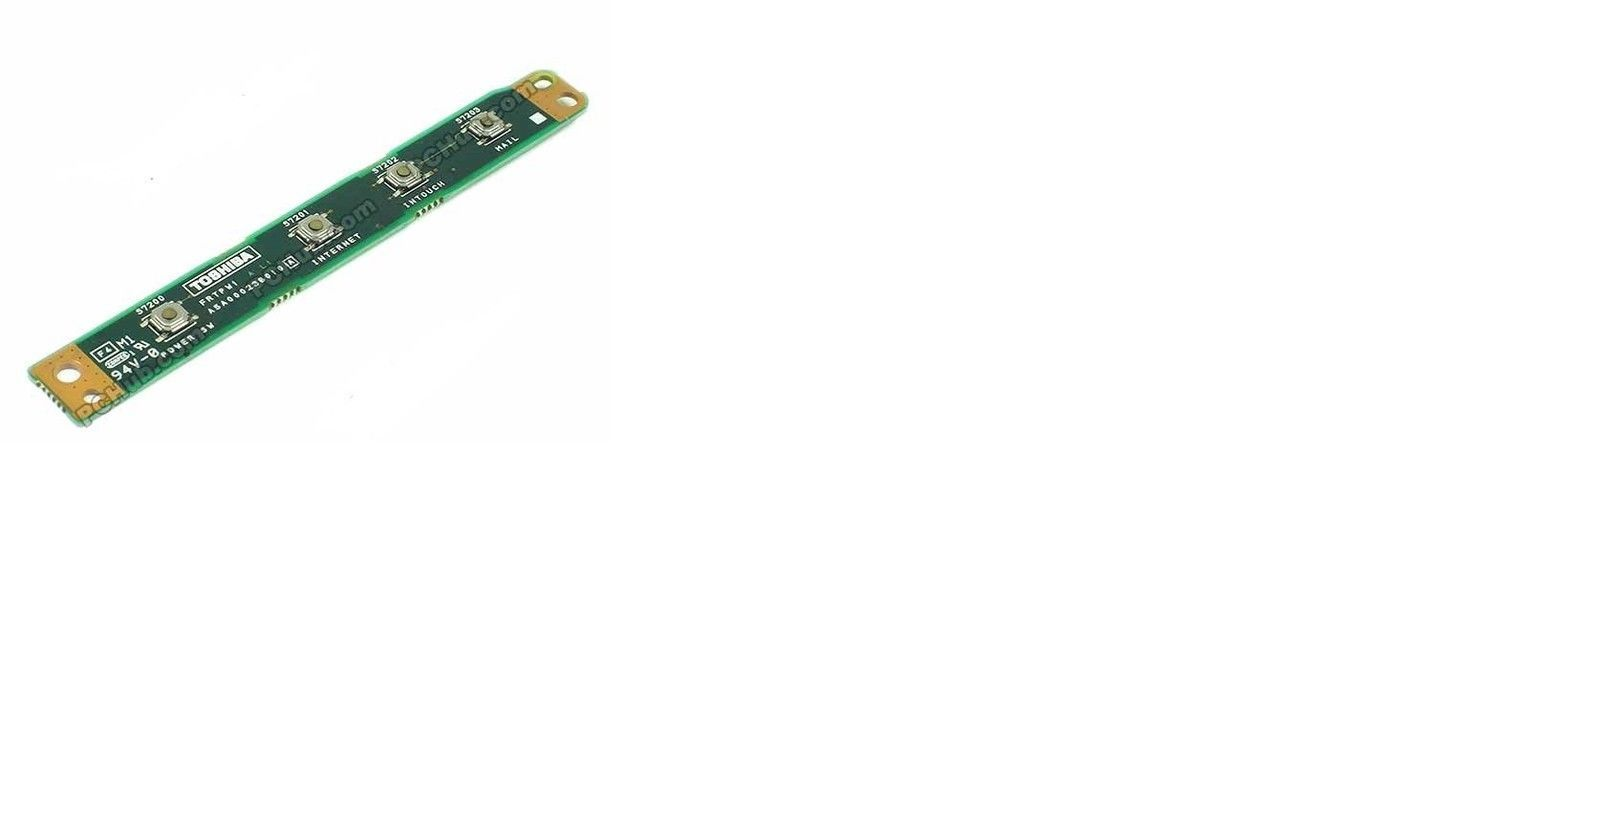 OEM TOSHIBA 1415-S173 POWER BUTTON BOARD FRTPW1 A5A000236010 LAPTOP